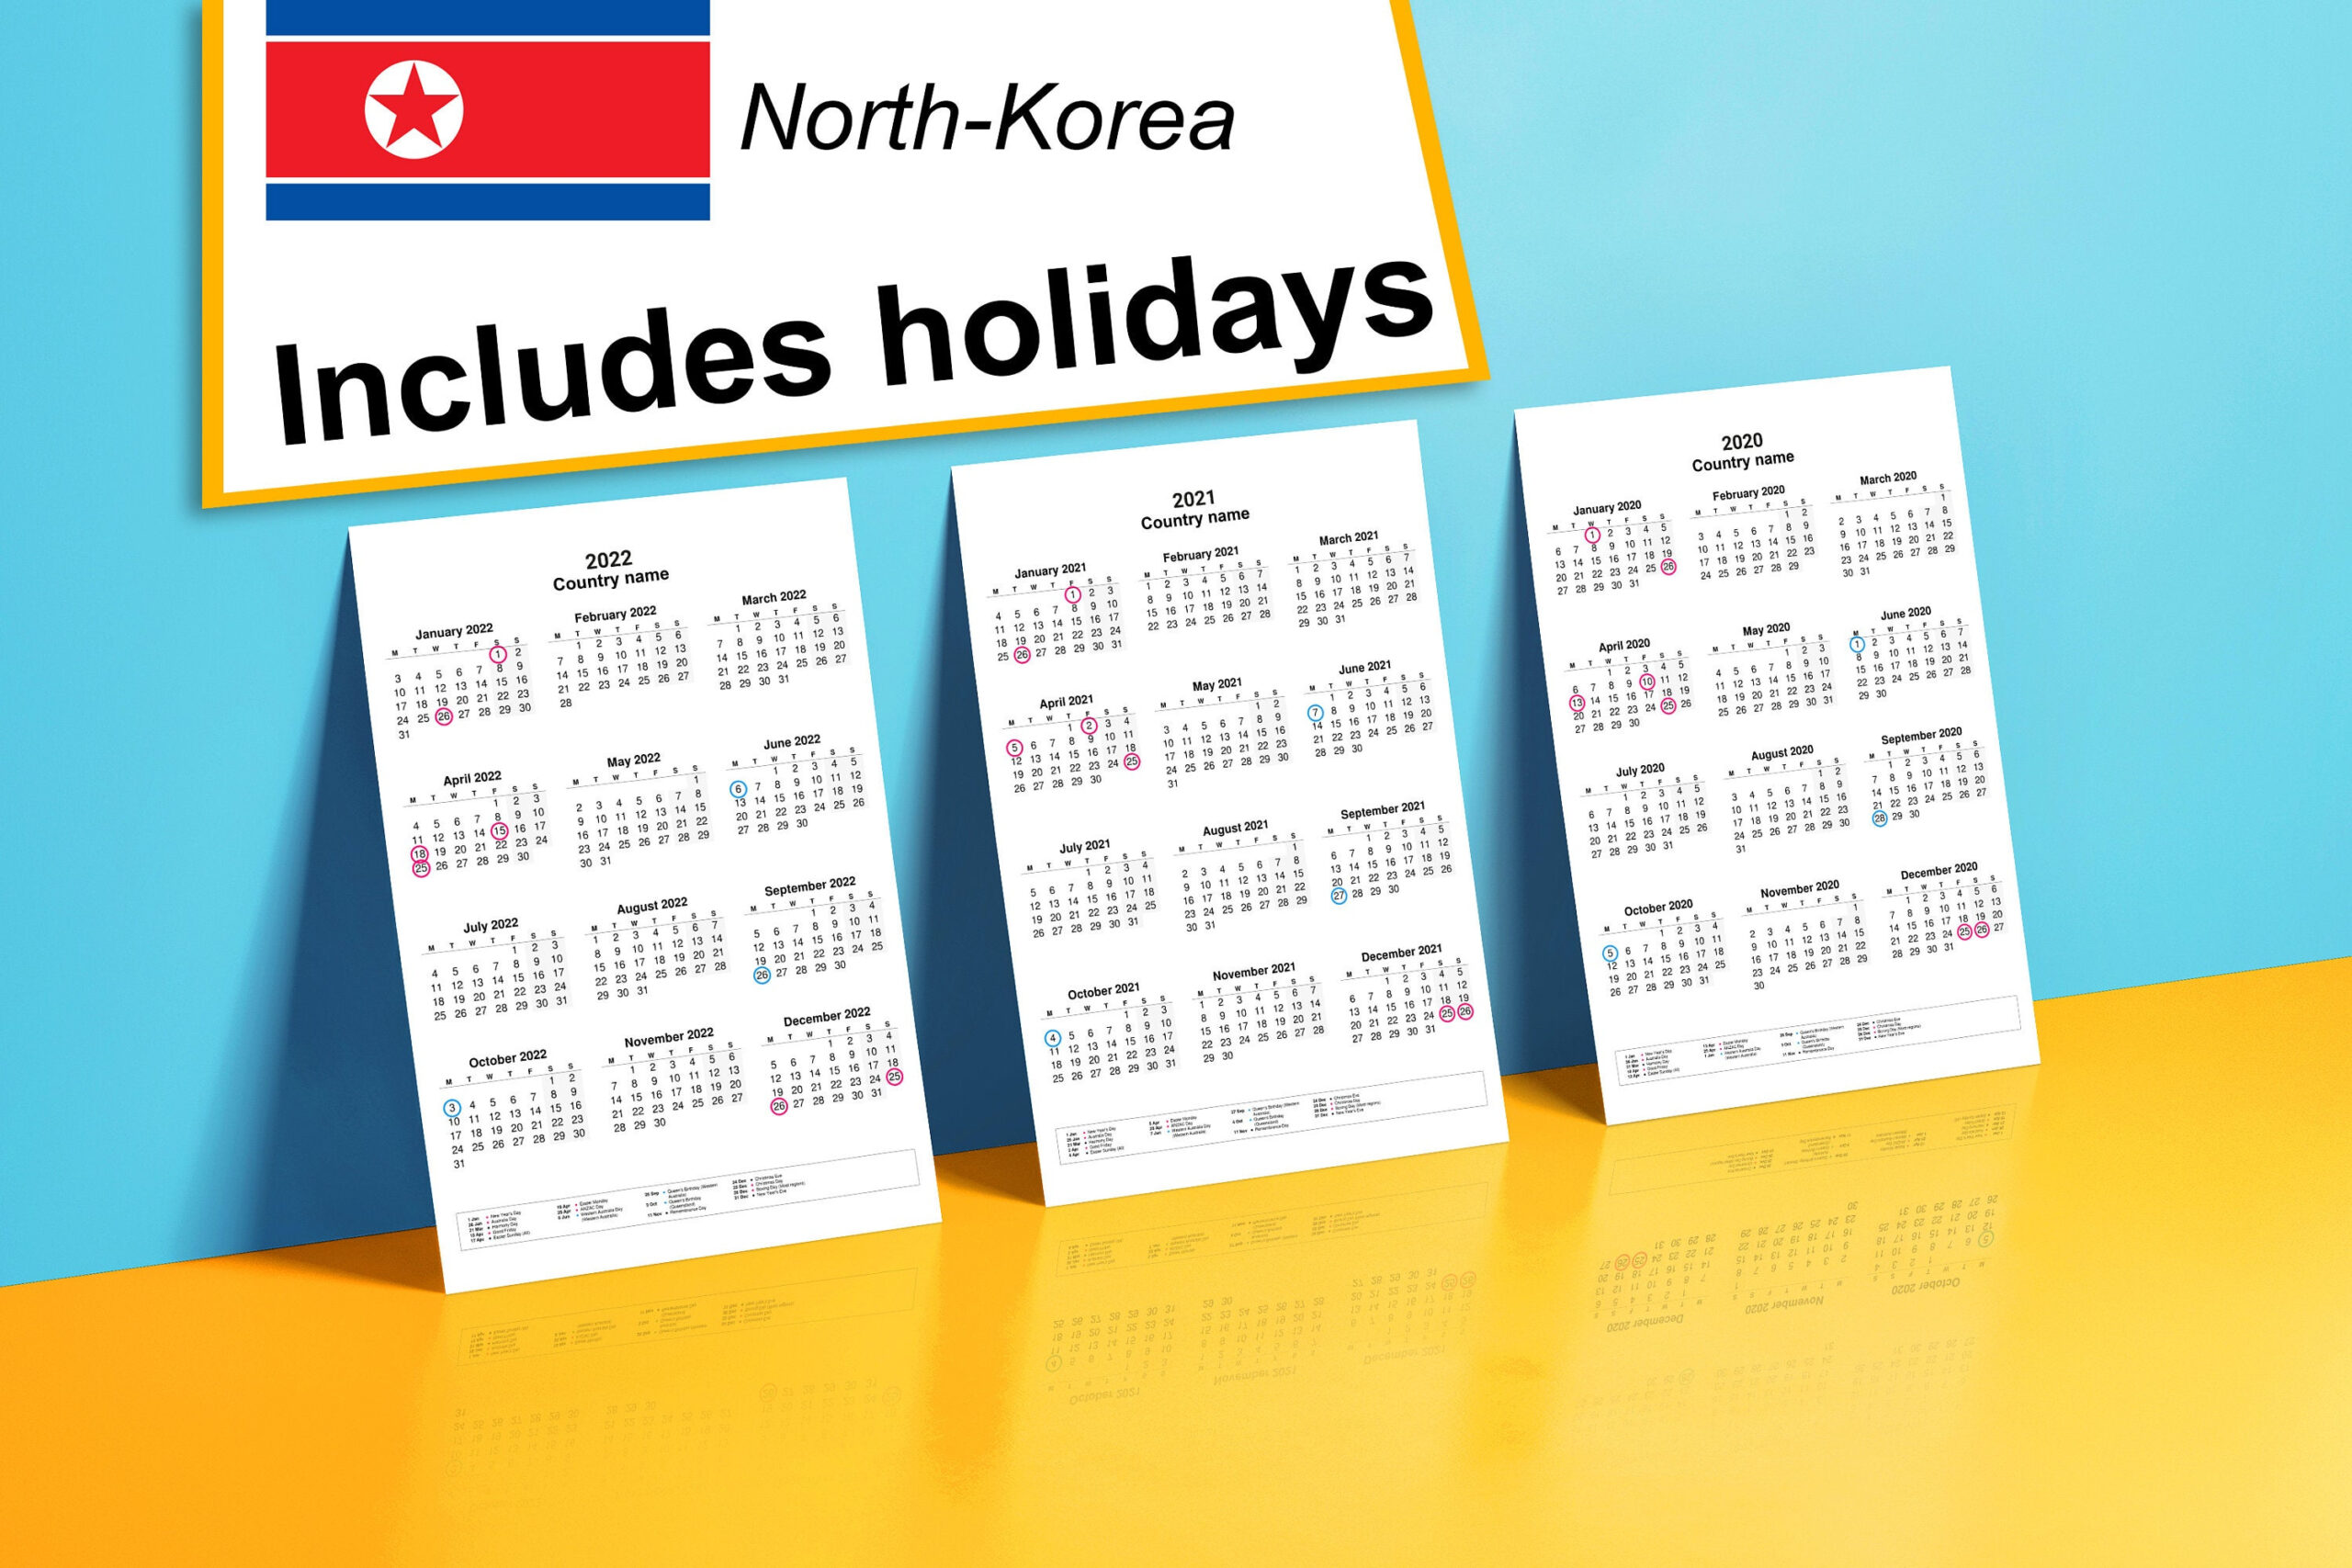 2020-2022 Yearly Calendar With Holidays For North-Korea